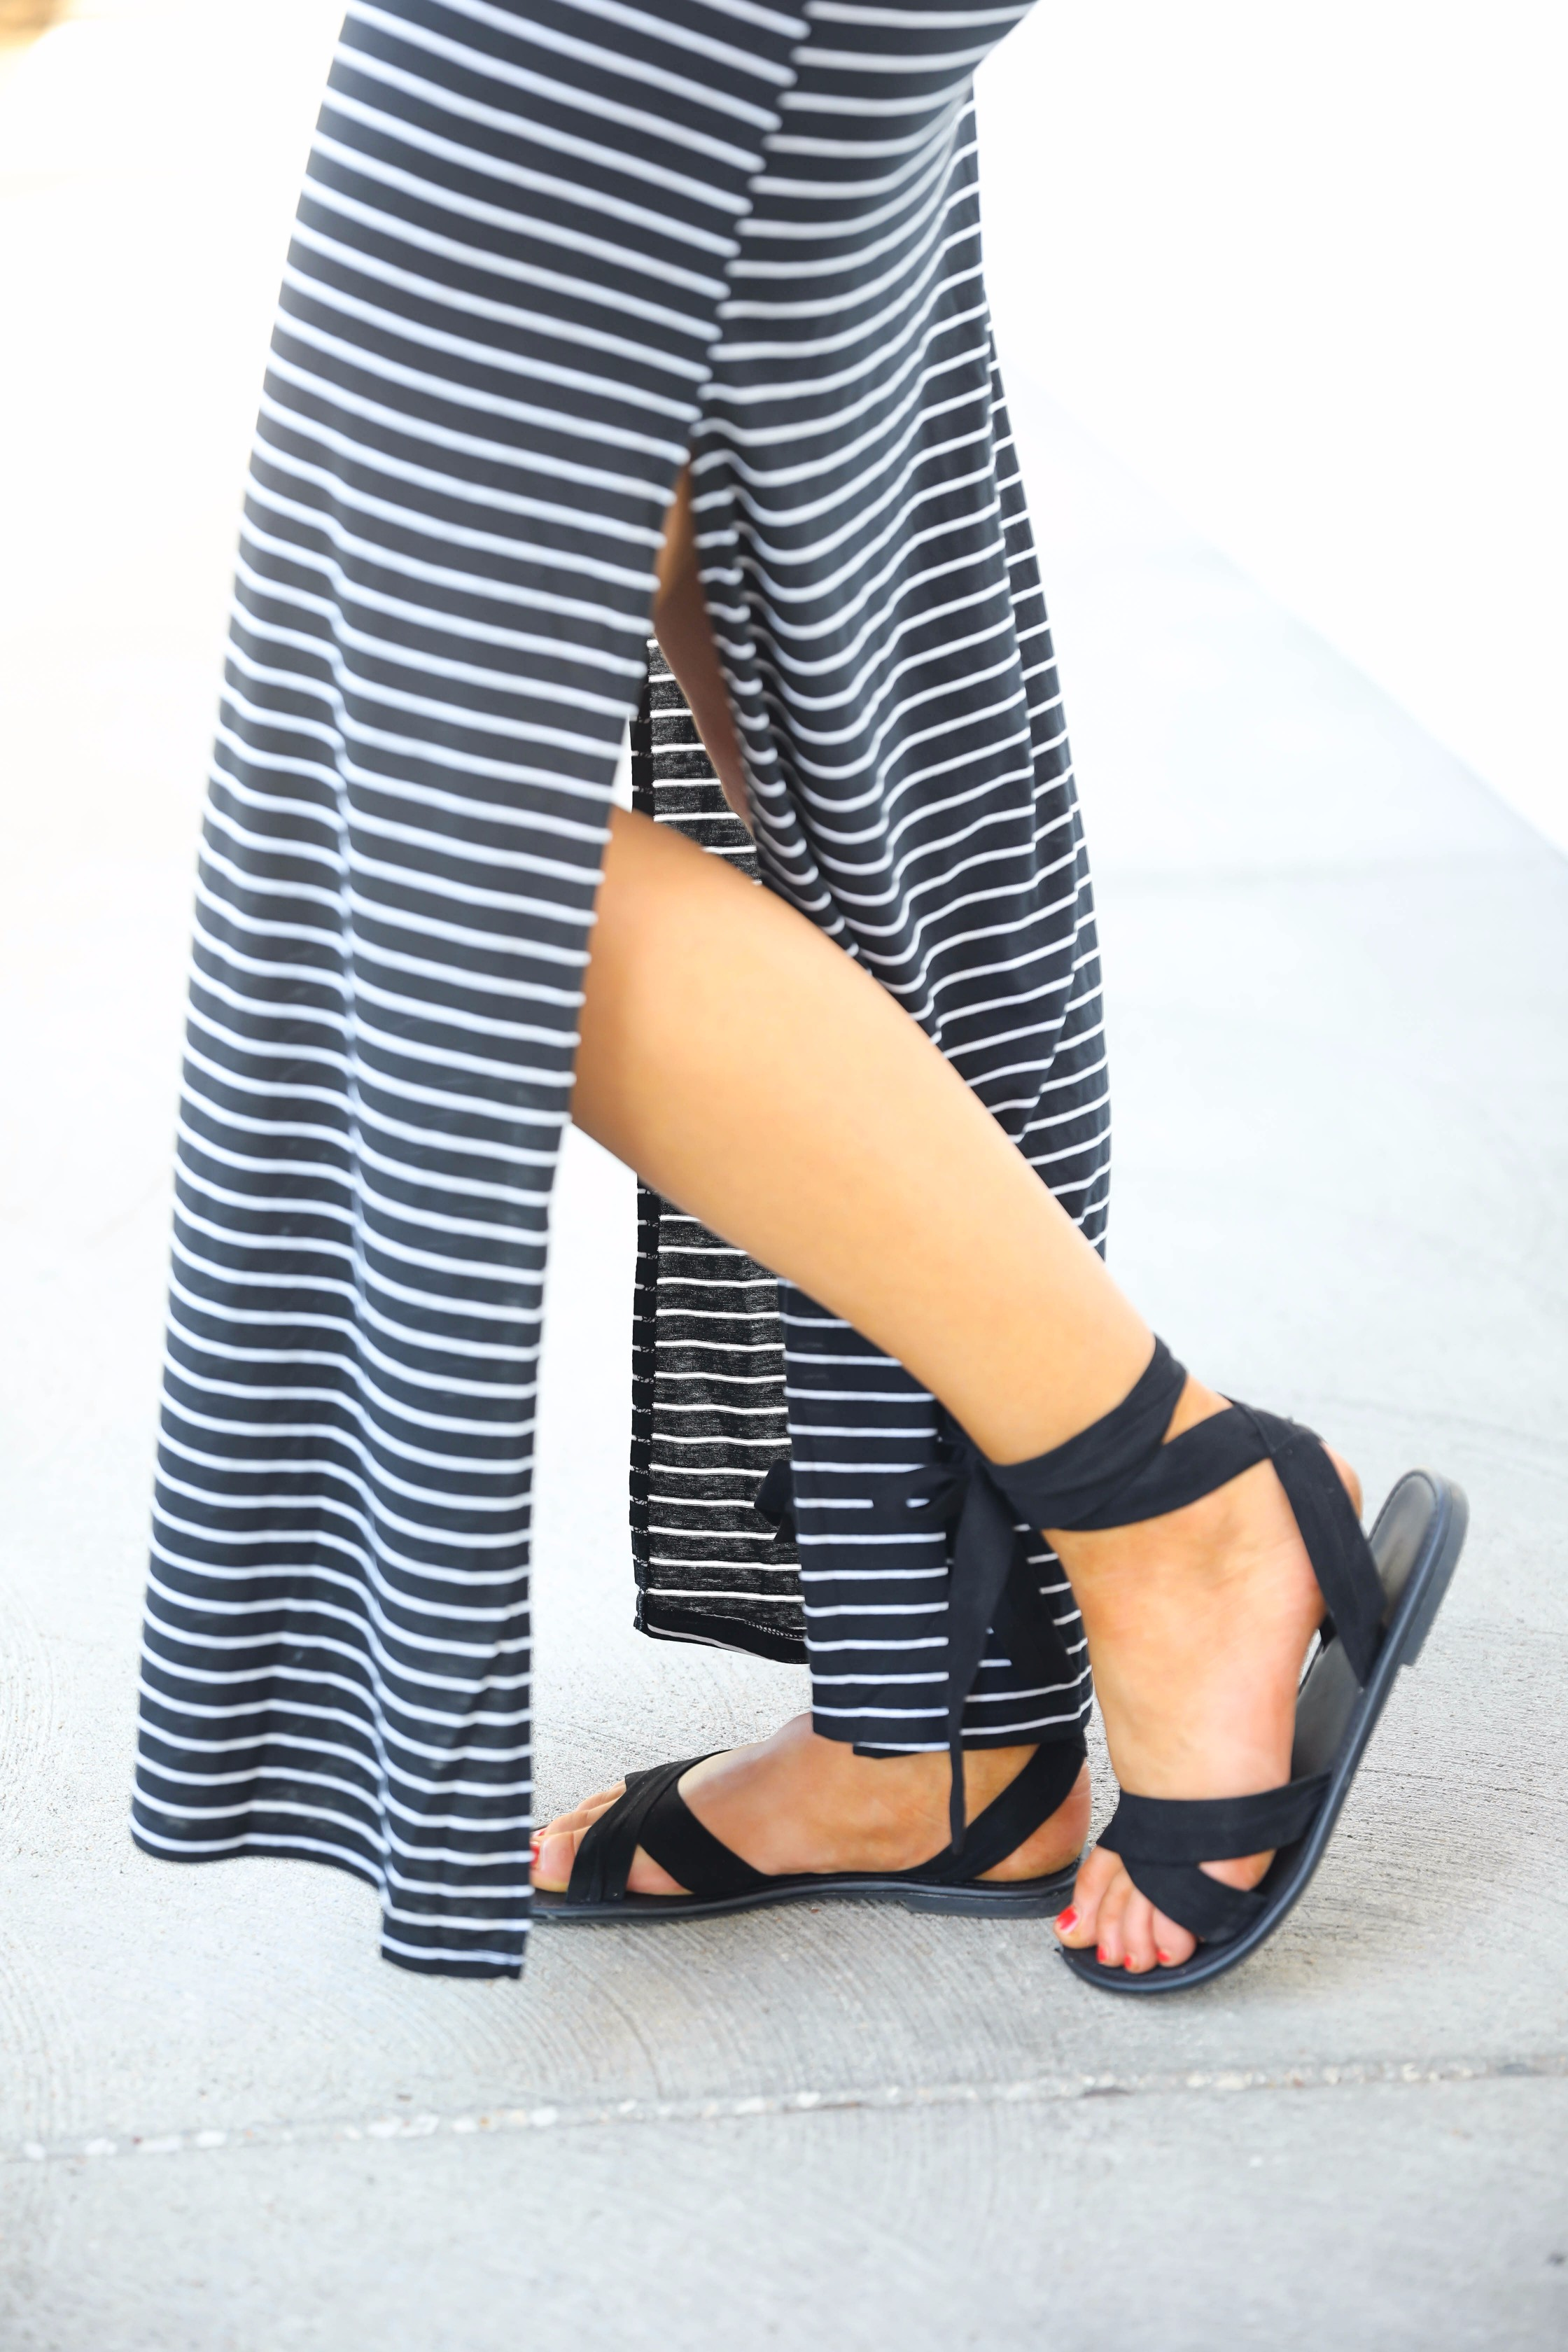 Striped Maxi with messy fishtail french braid by lauren Lindmark on daily dose of charm 4P6A7715